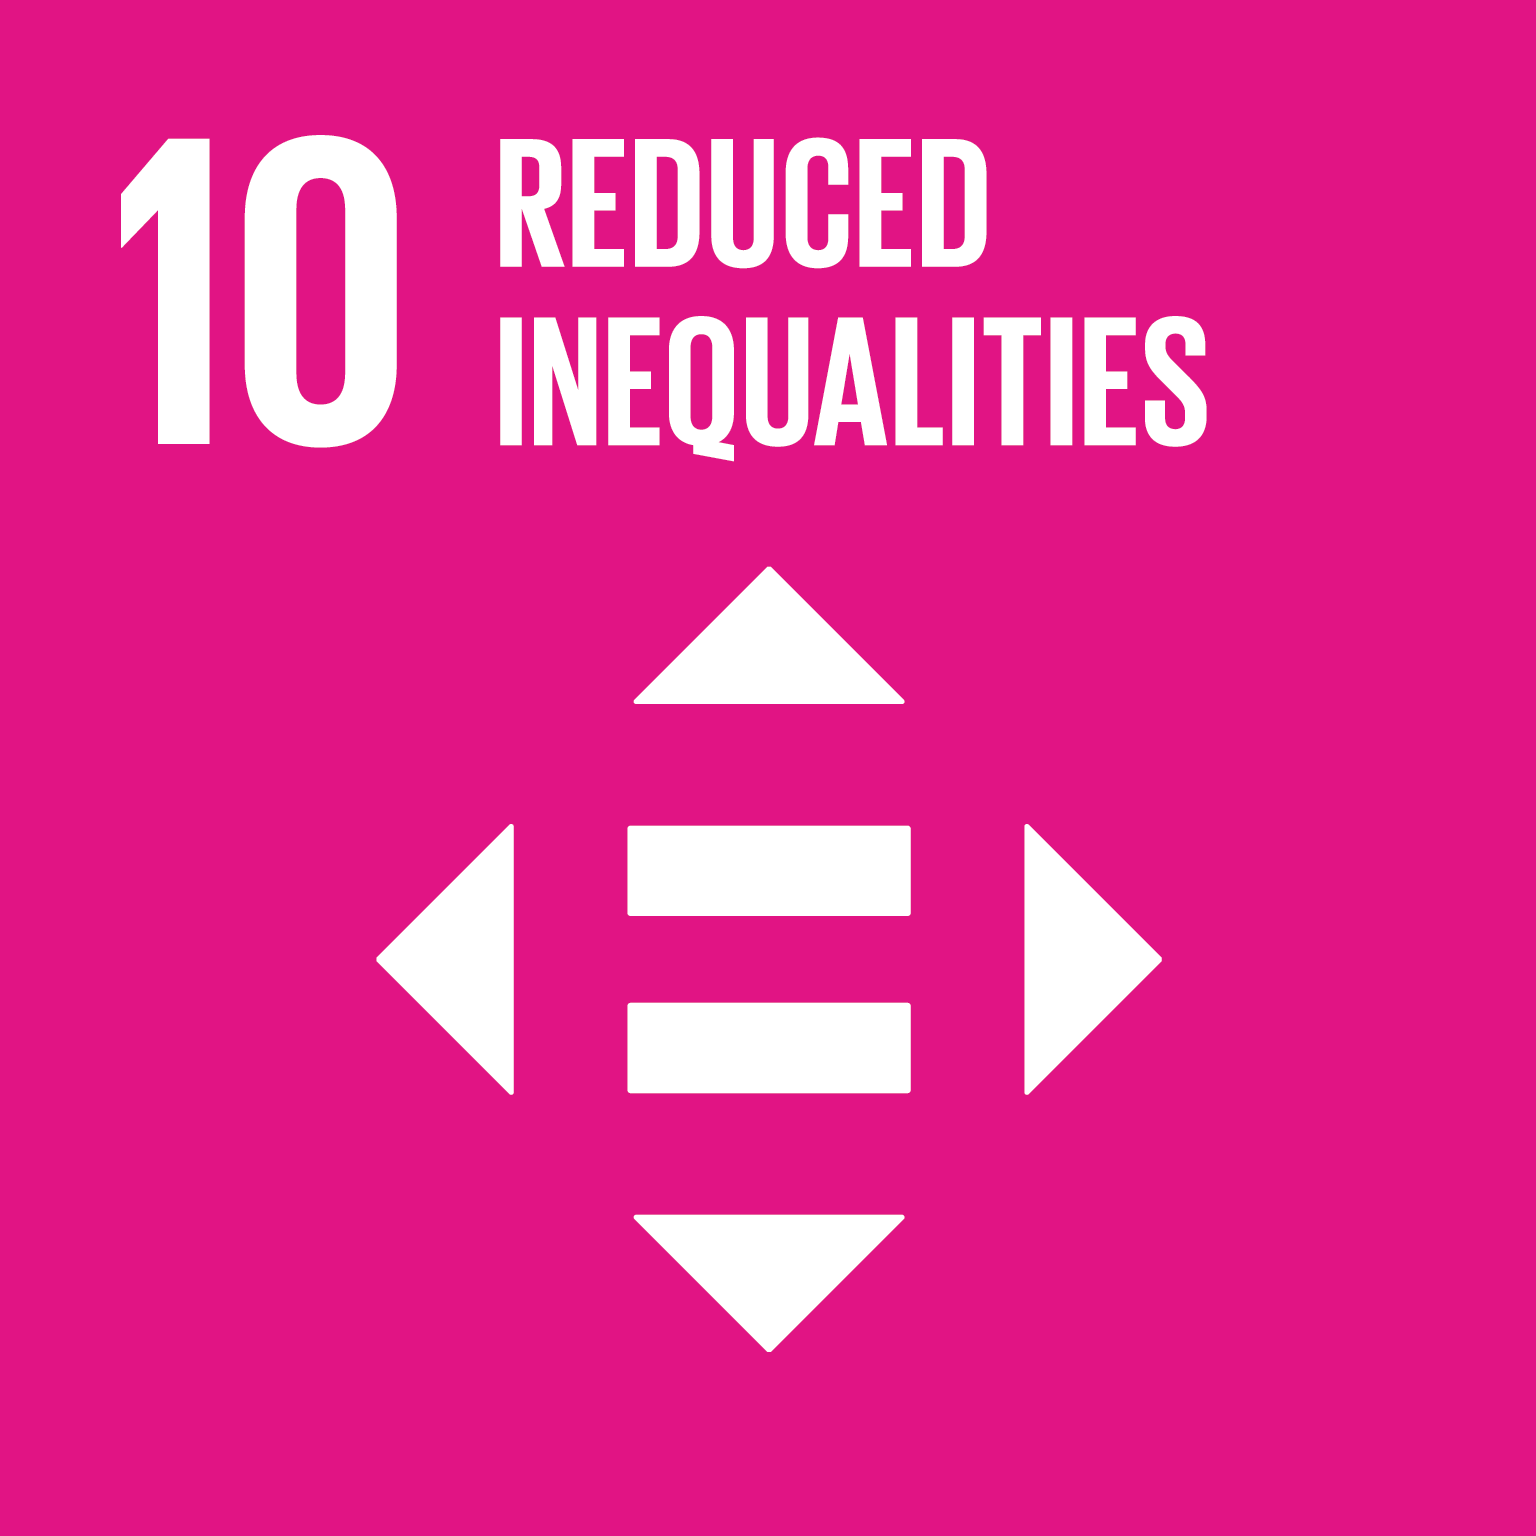 10th goal is reduced inequality